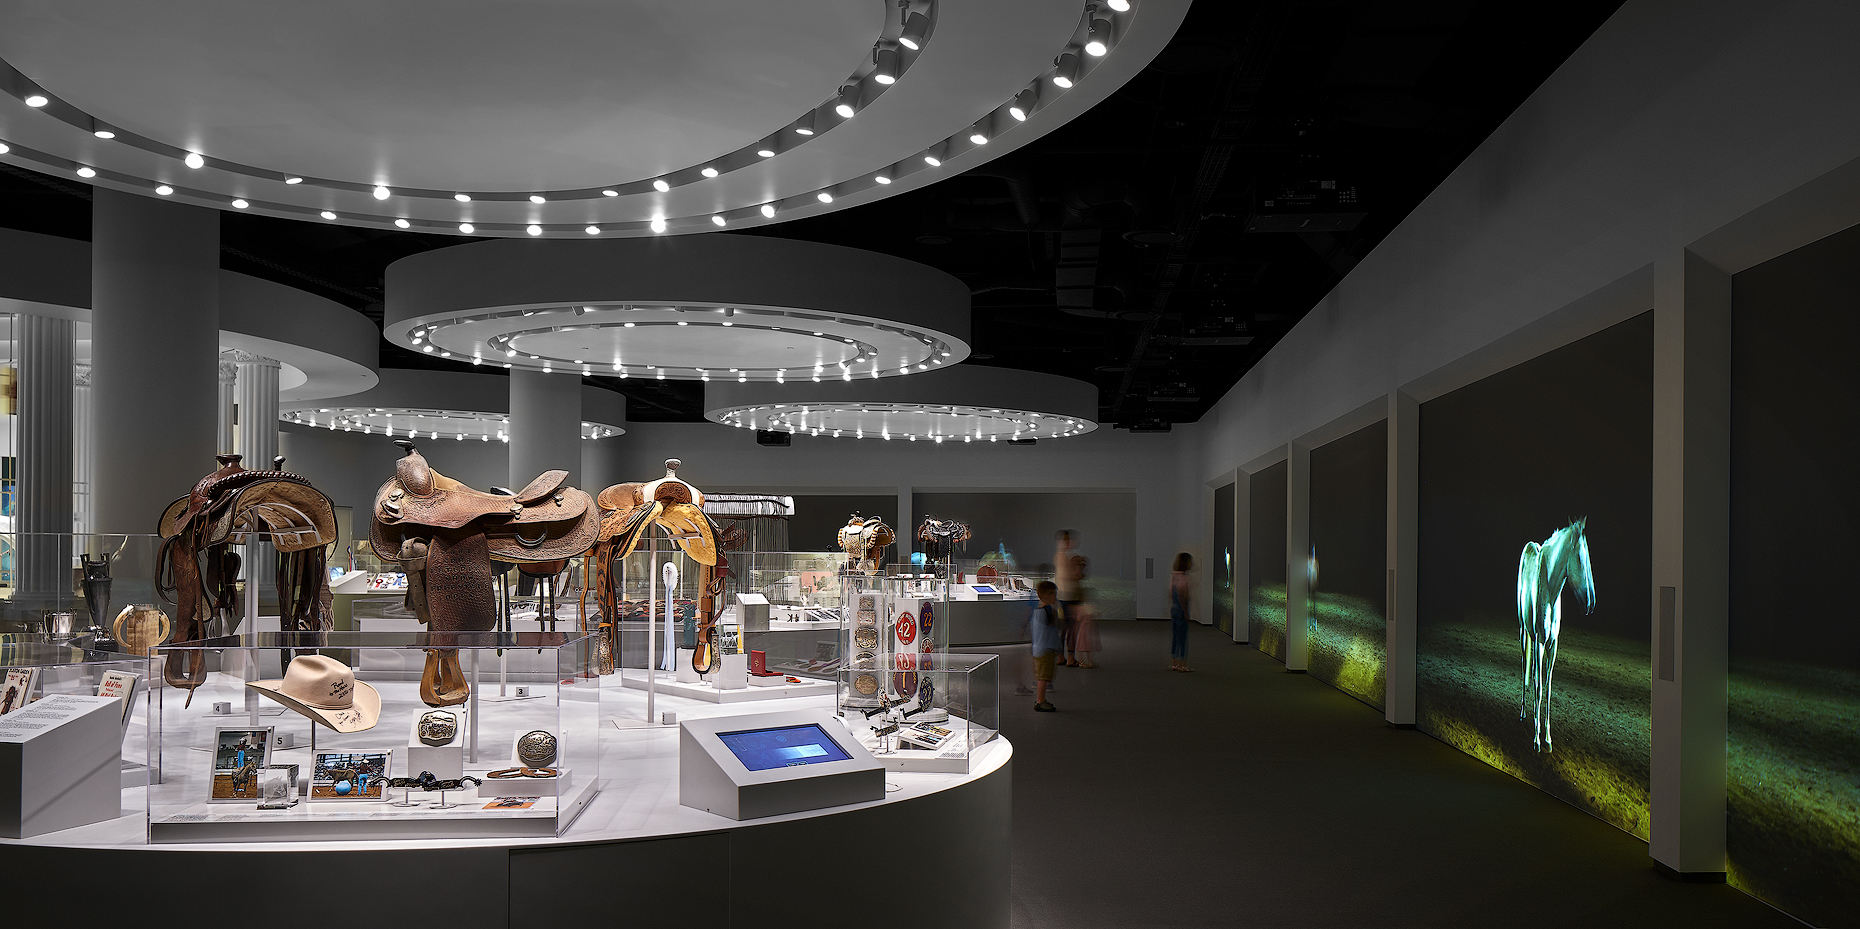 national cowgirl museum Fort Worth texas Dror Baldinger photography